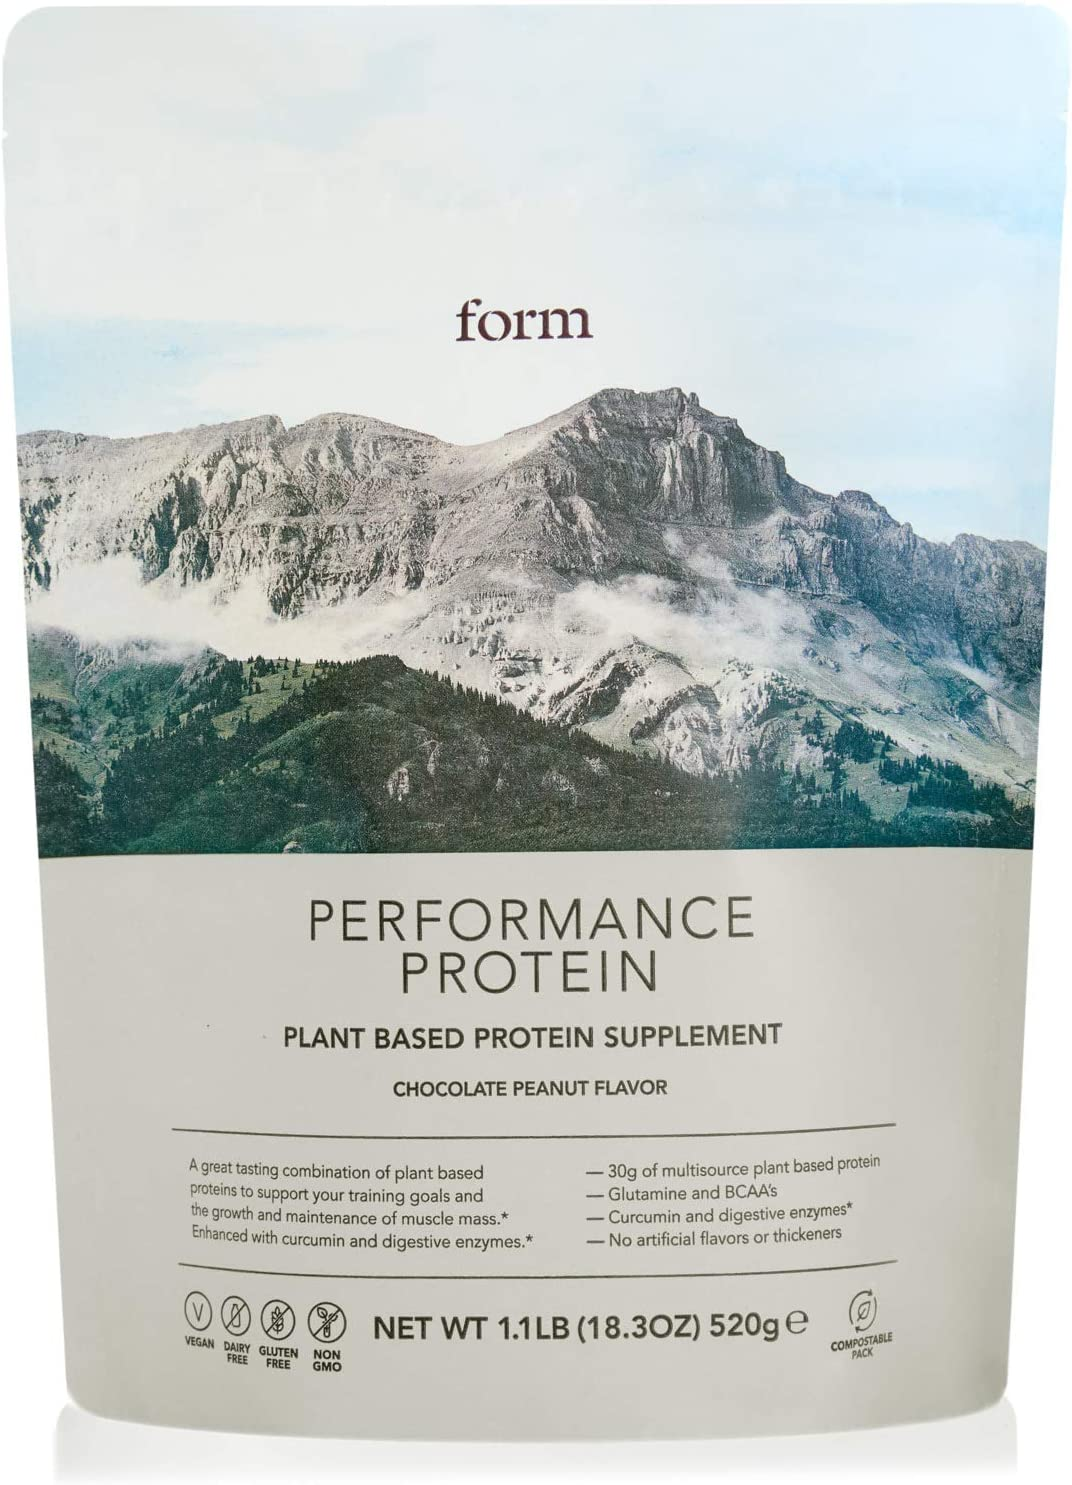 Form Performance Protein - Vegan Protein Powder - Complete Amino Acid Profile with BCAAs and Digestive Enzymes. Perfect Post Workout. Tastes Great with Just Water! (Chocolate Peanut)